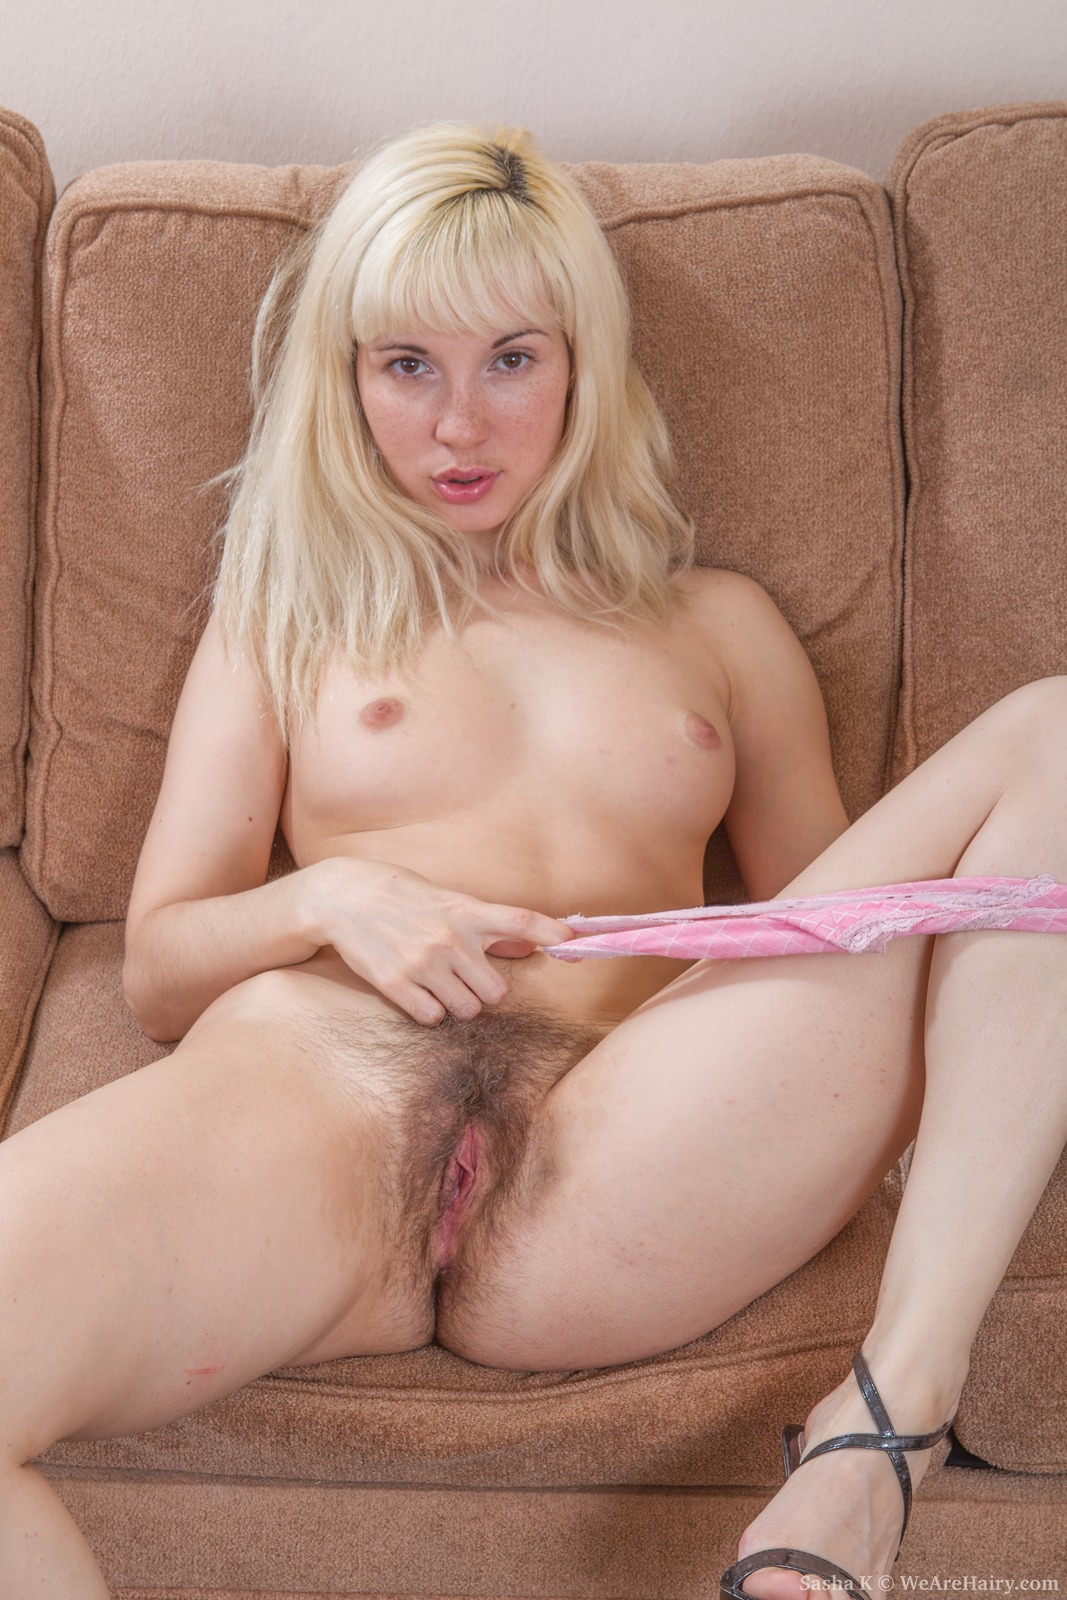 Julia nickson nude pictures